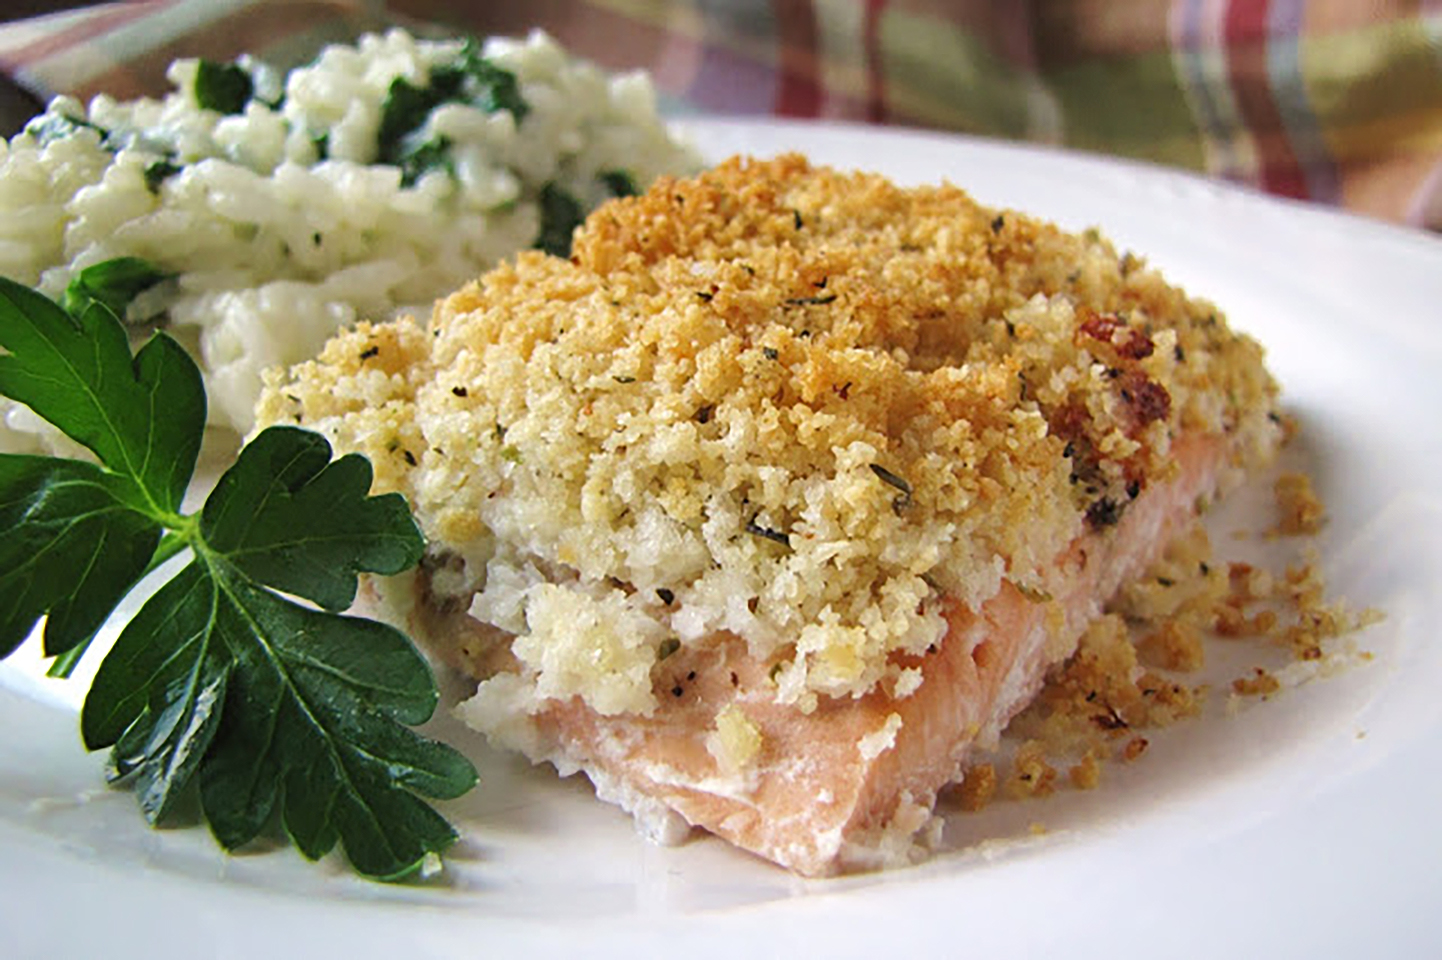 Baked salmon with a crusty panko crumb topping